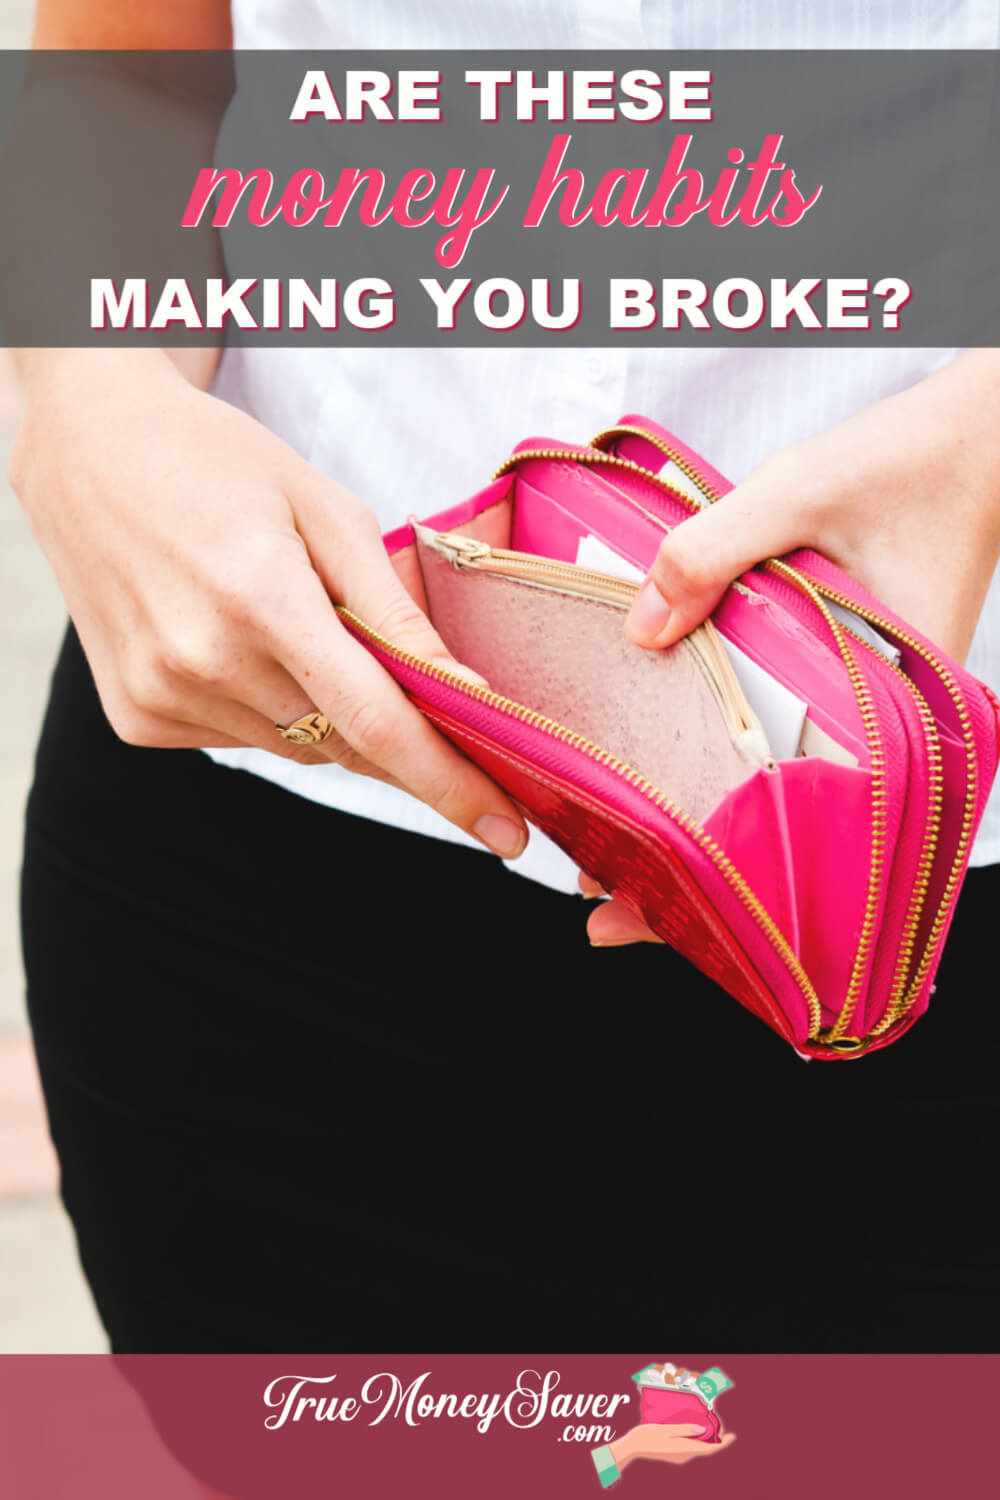 The first step to fixing bad money habits is to identify them. Check out which poor money habits are keeping you broke! #debtfreedom #savingmoney #truecouponing #savemoney